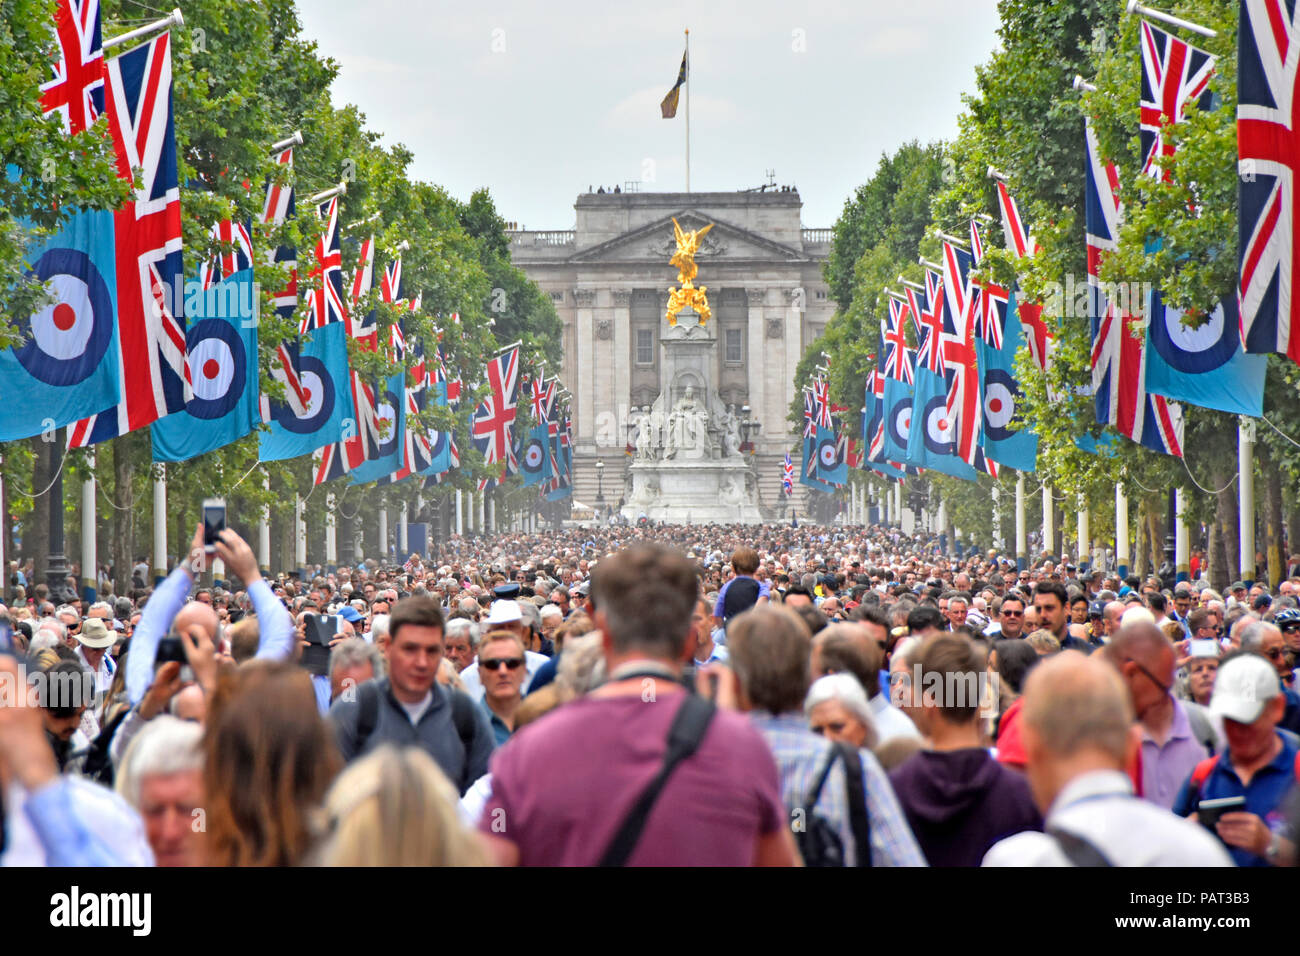 Street scene crowds of people in The Mall London at Royal Air force RAF centenary parade & flypast event Union Jack flags Buckingham Palace England UK - Stock Image